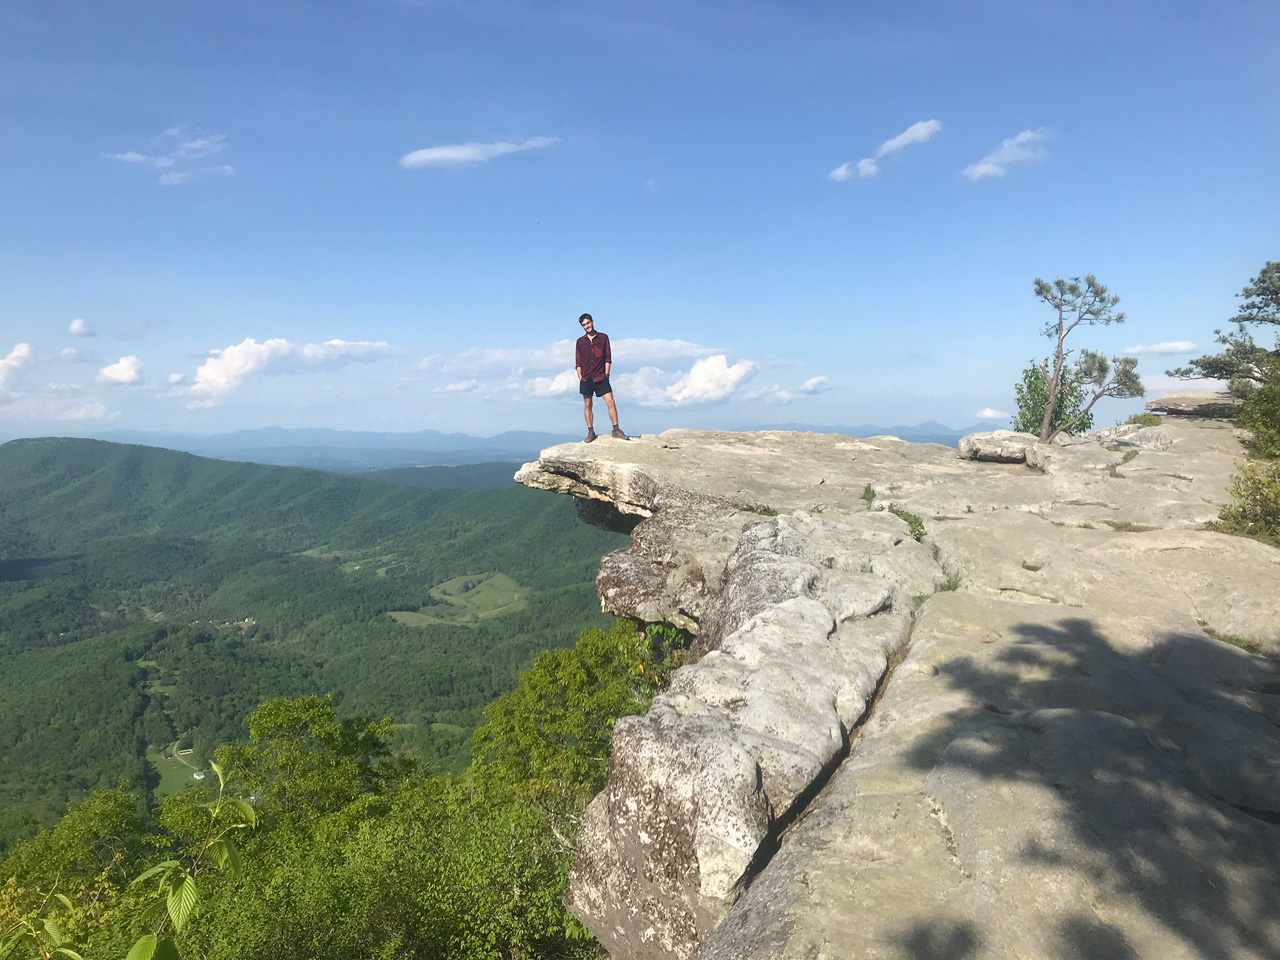 Brett Luce at McAfee Knob, Catawba, Virginia